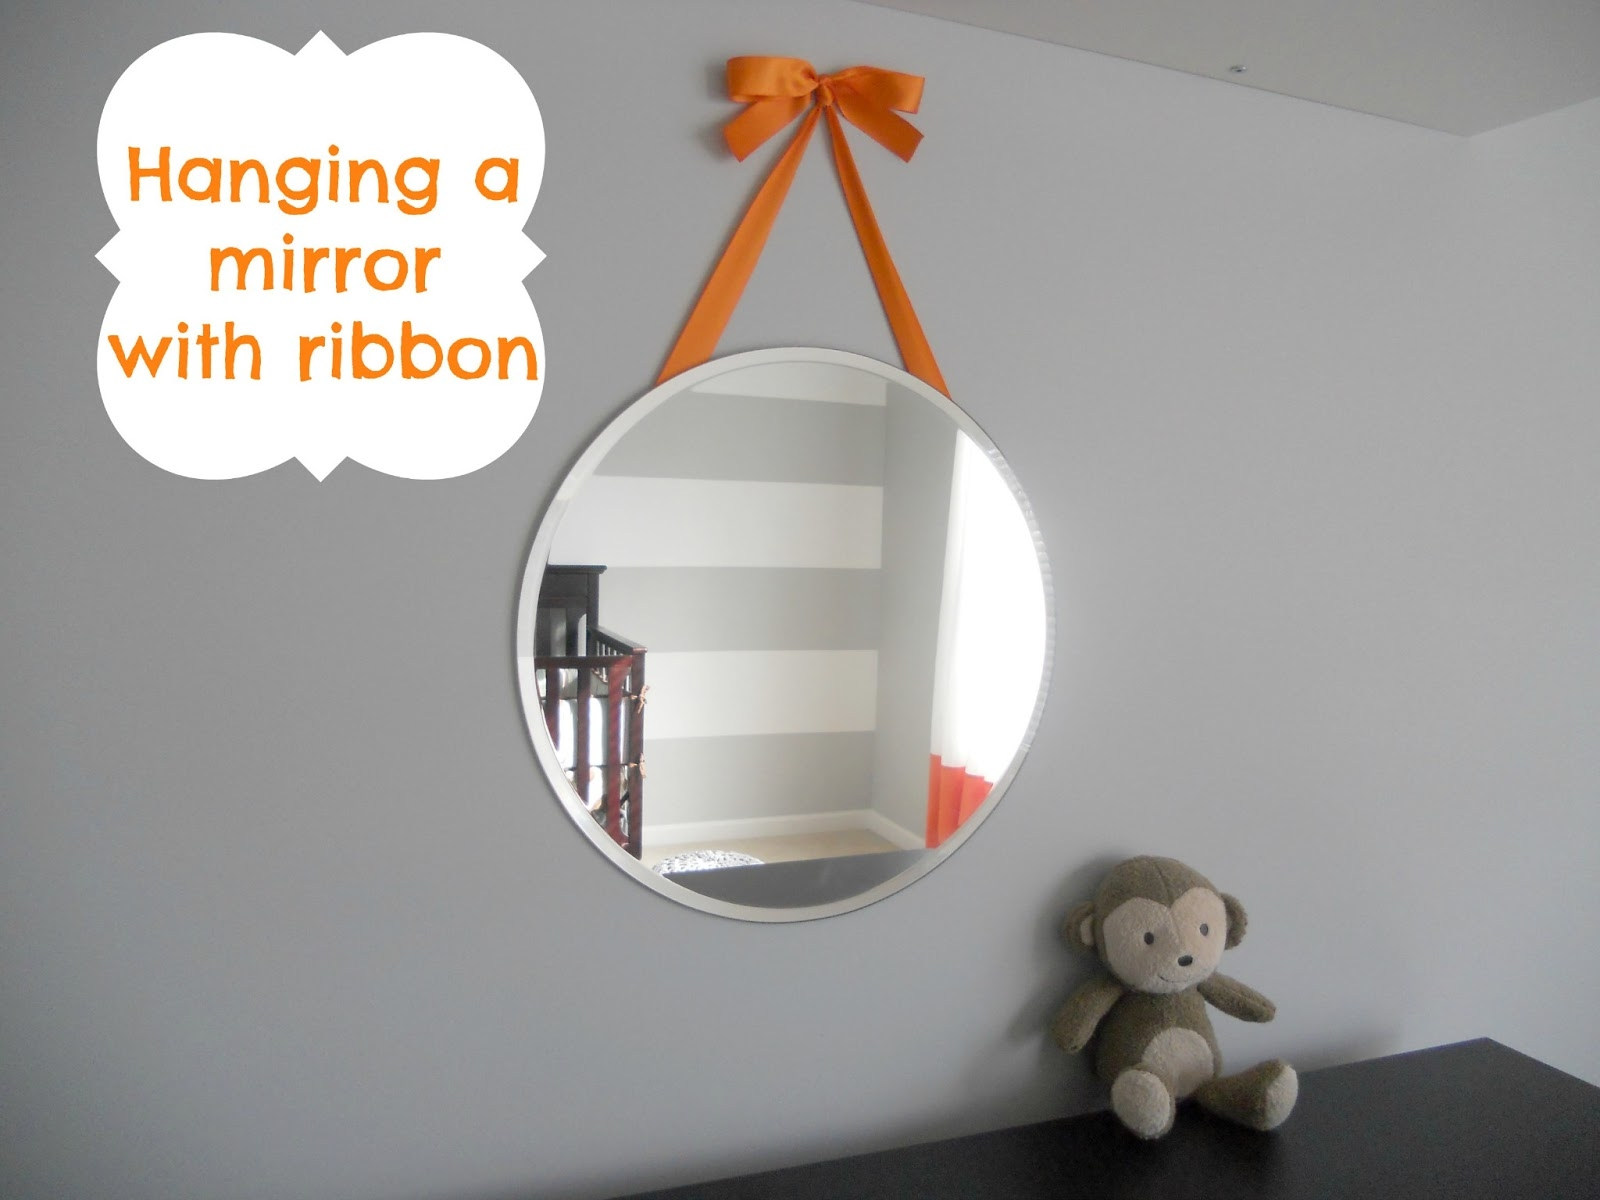 Hanging Wall Mirror With Ribbon Hanging Wall Mirror With Ribbon decorating cents hanging a mirror with ribbon 1600 X 1200